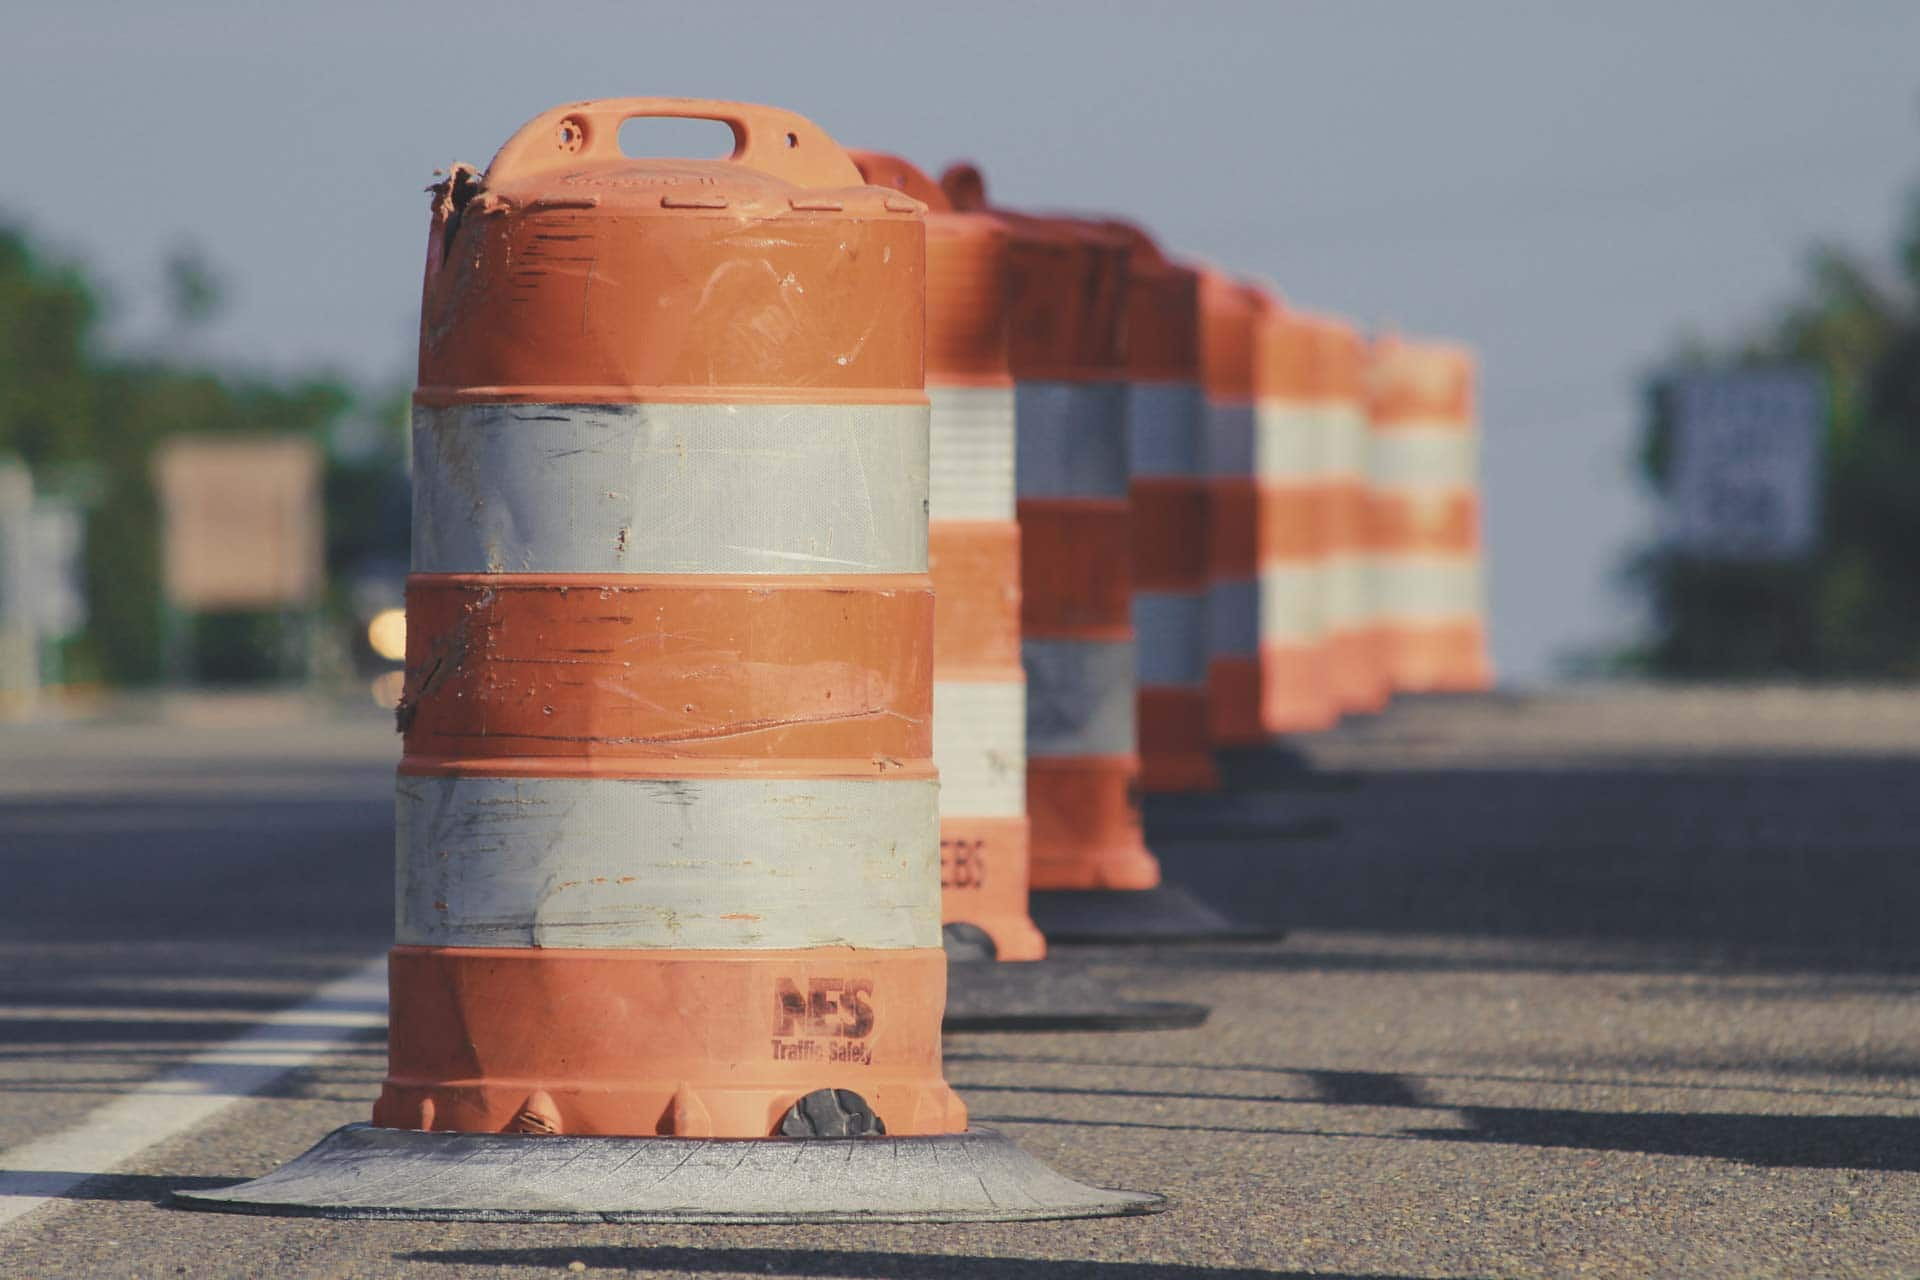 City closes part of N. Spring Street for sewer line repair